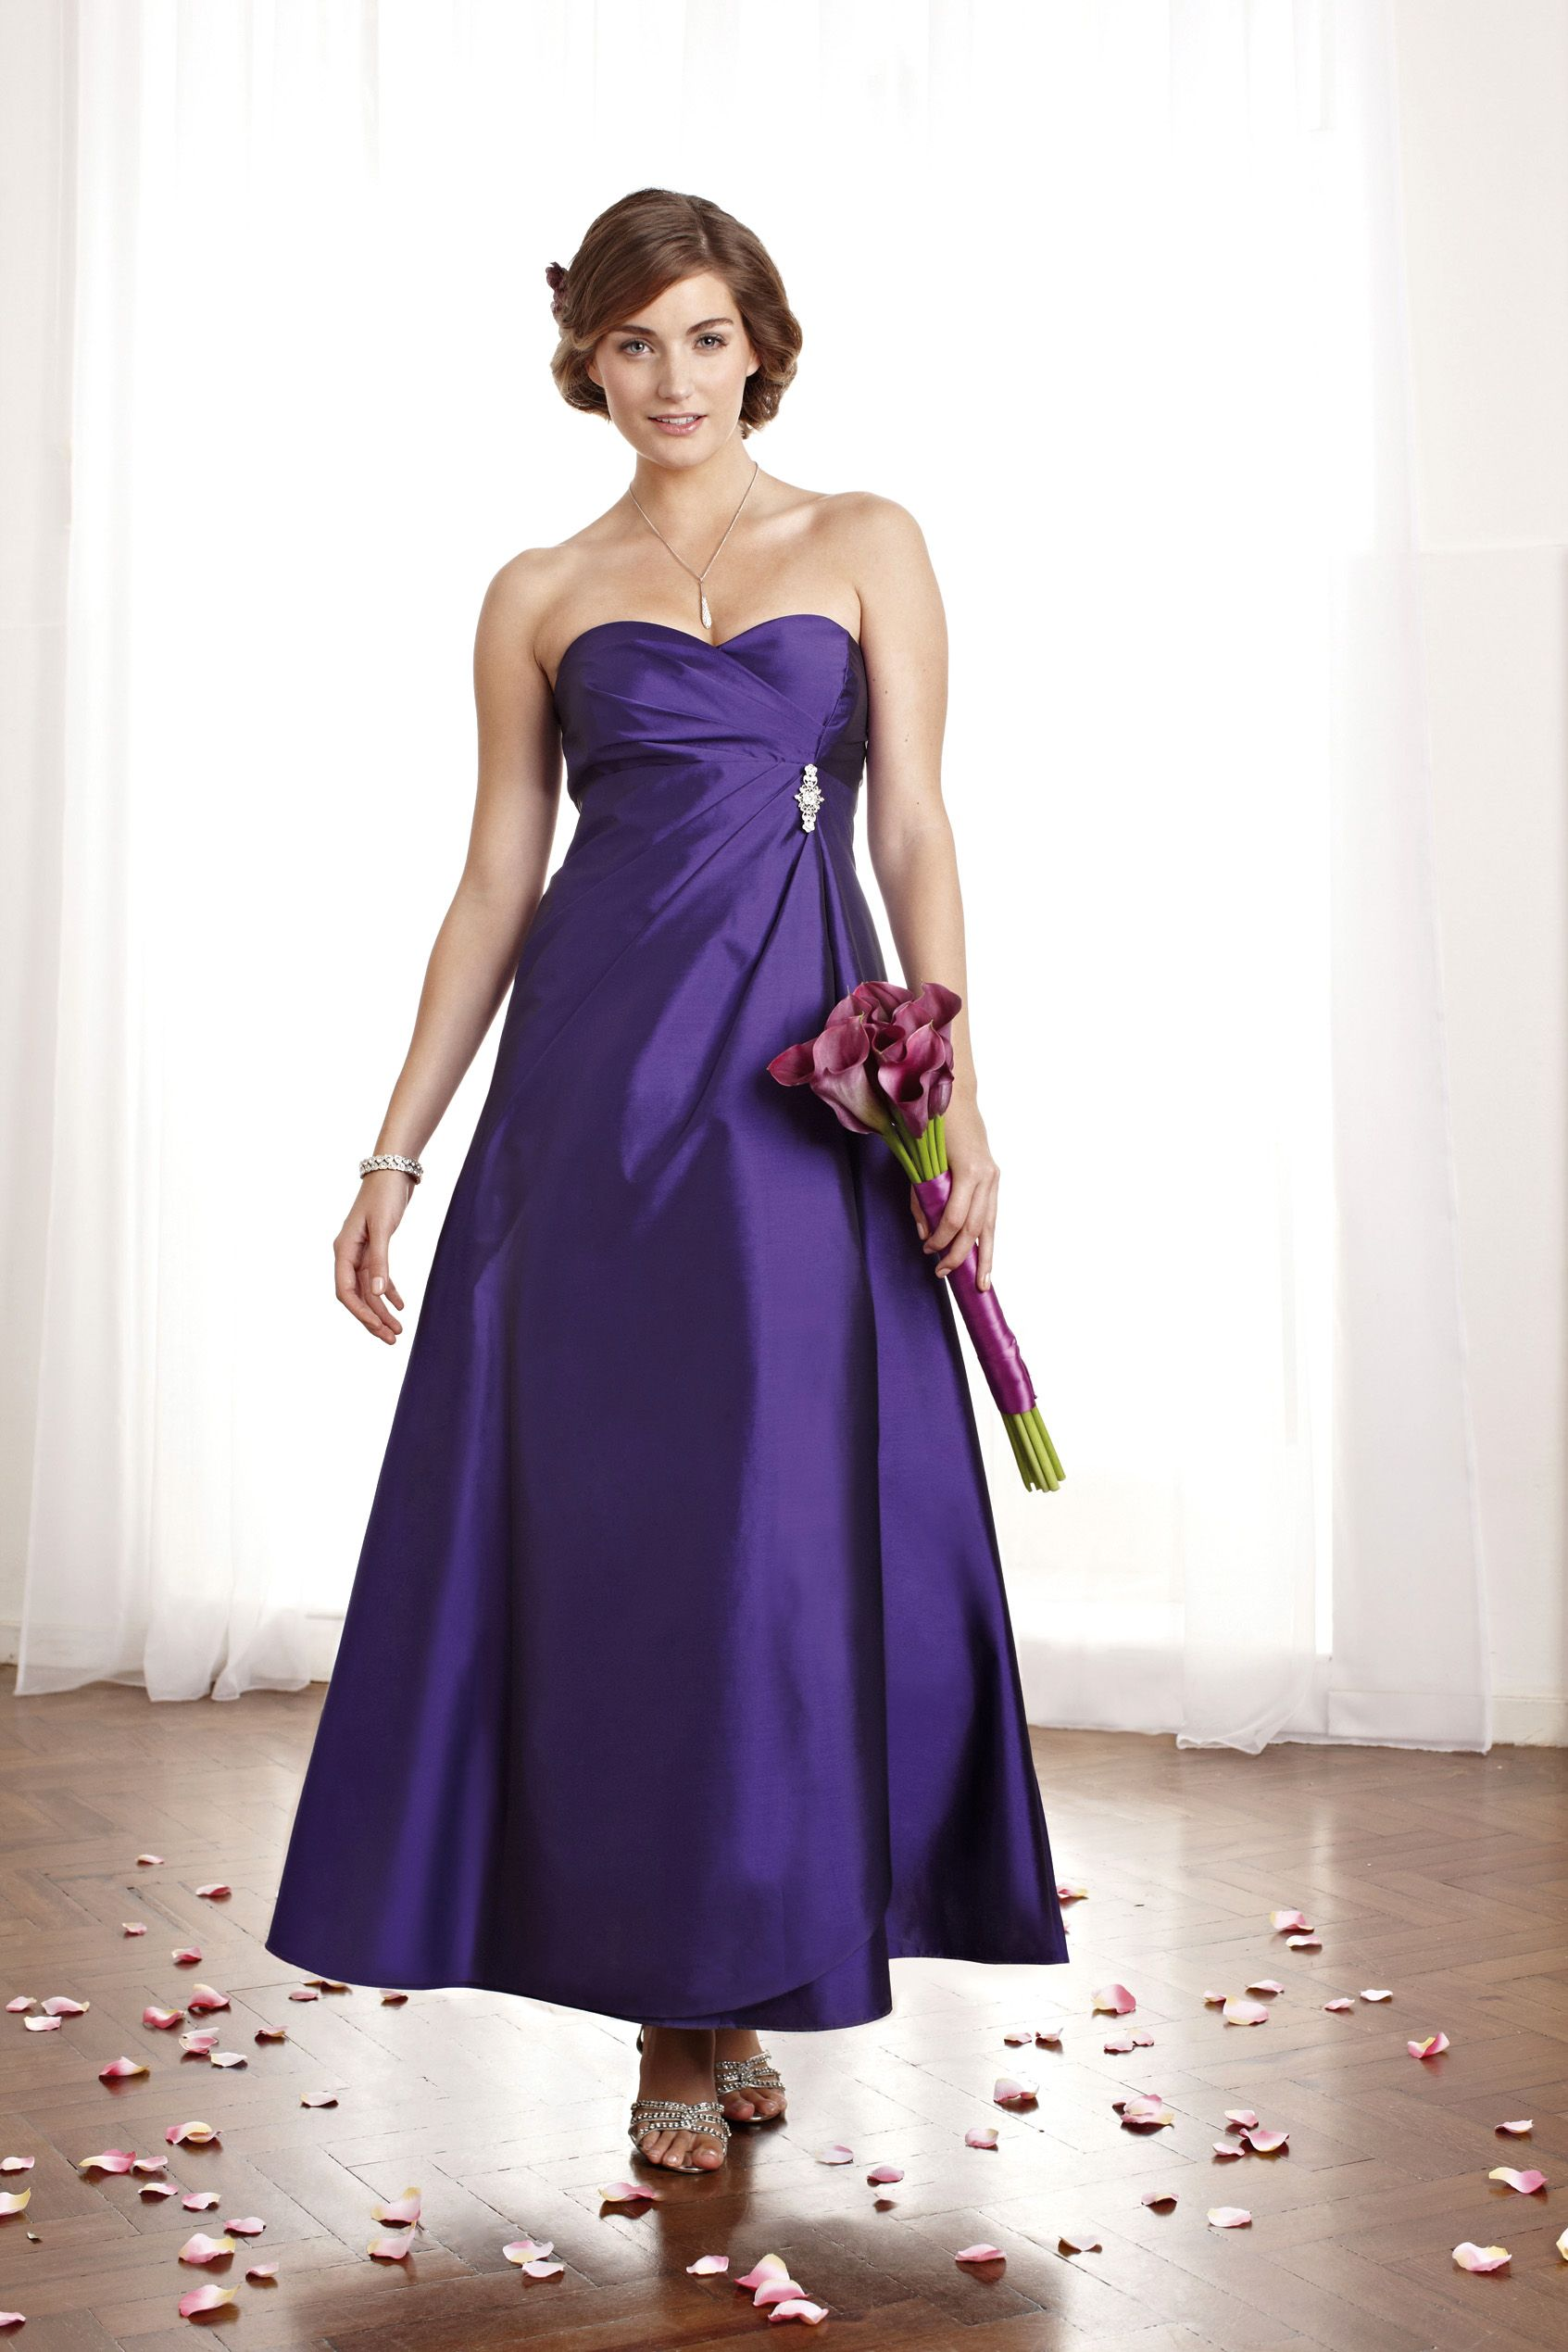 Bridesmaid Dresses From Brands Like Debut, Coast & Designers at ...